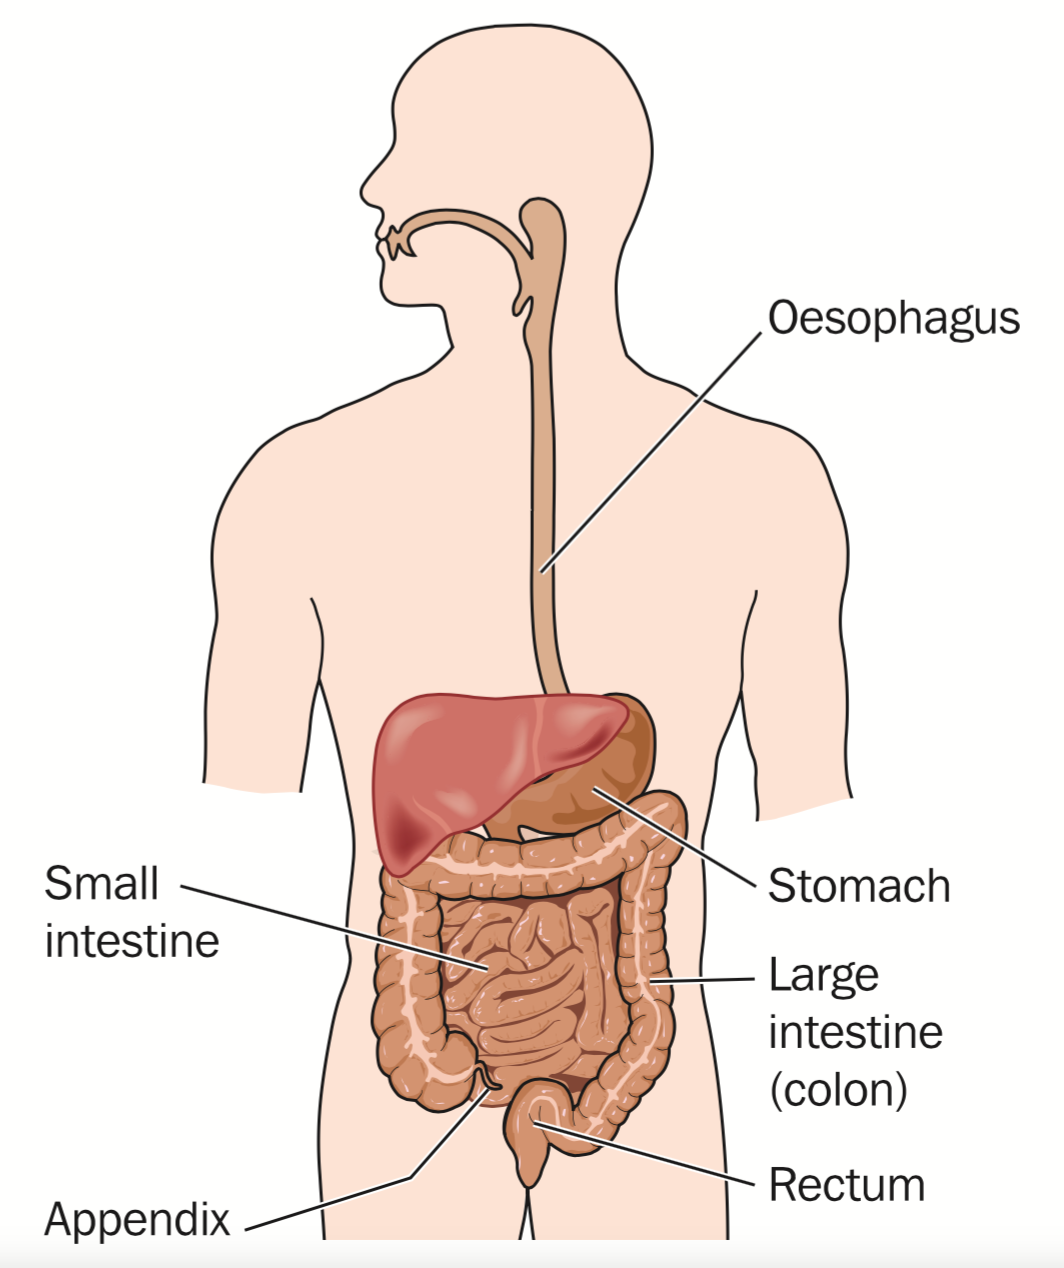 What should I do if my stomach hurts